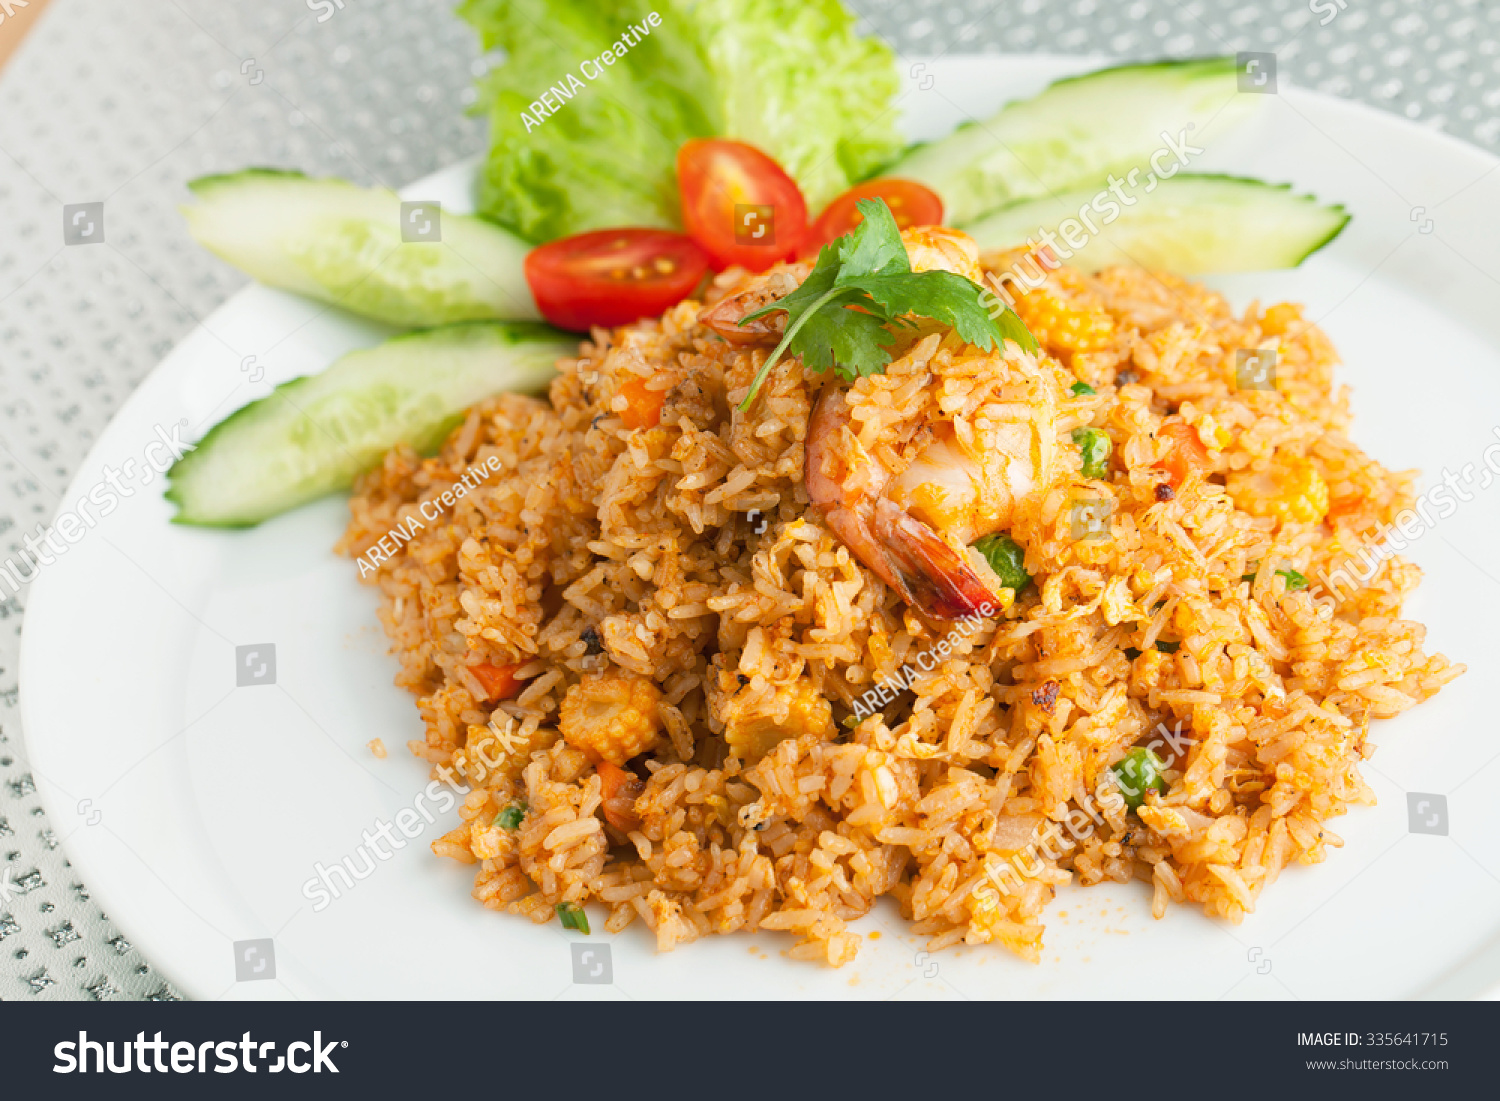 fried rice english project Egg fried rice【$850】 beef fired rice 【$895】 fired rice with choice of pork or beef or chicken【$895.